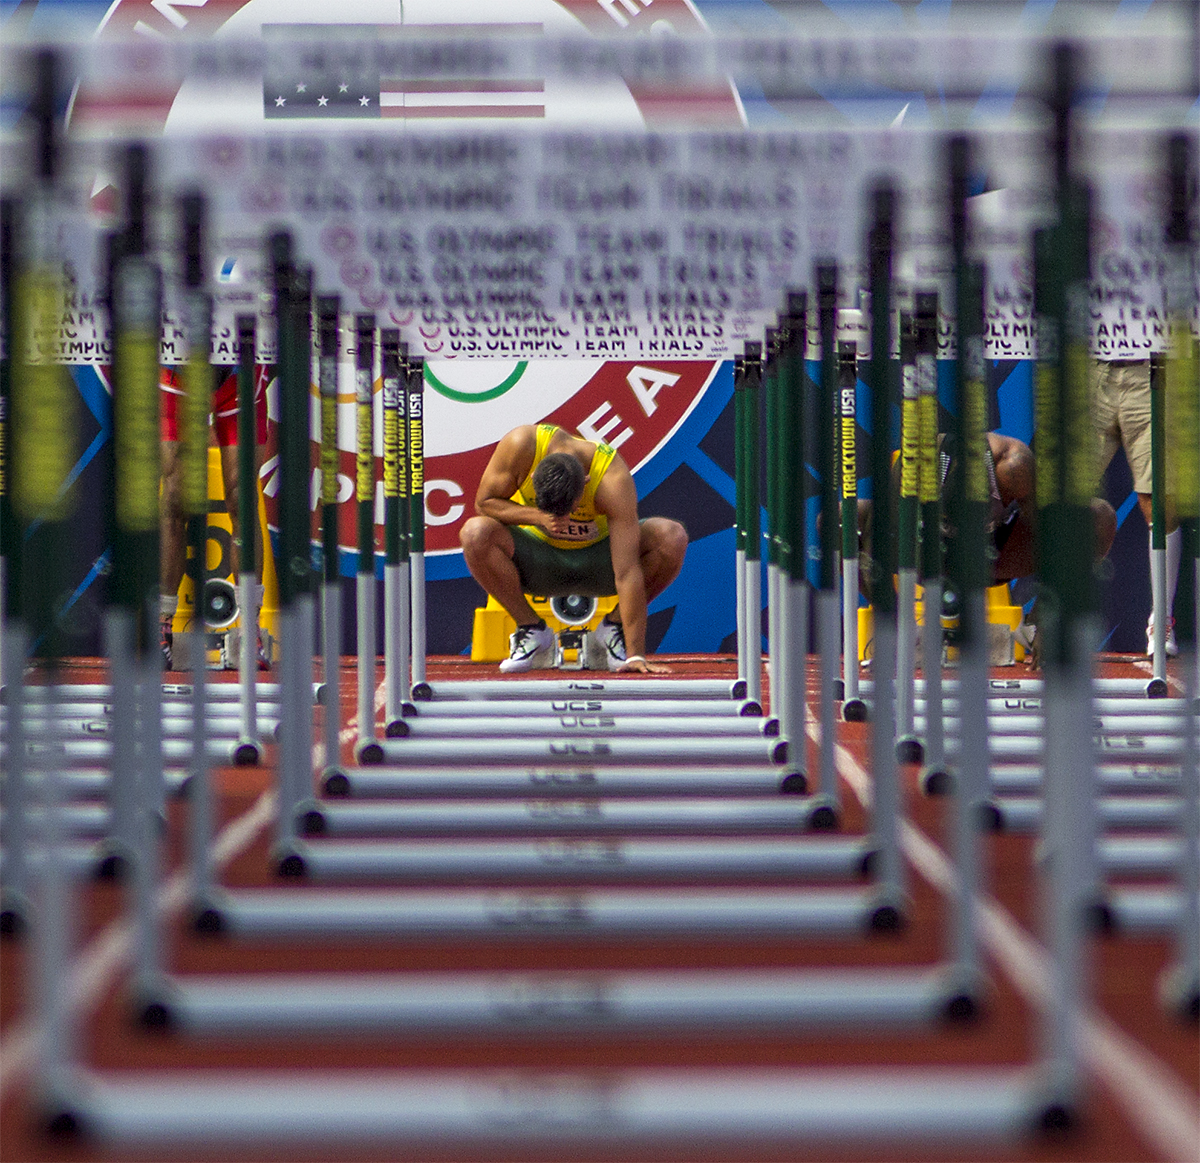 Oregon's Devon Allen performs the sign of the cross before competing in the semi-finals of the 110 meter hurdles at the Olympic Trials. Allen would win his heat in the semi-finals and go on to win the final in 13.03.